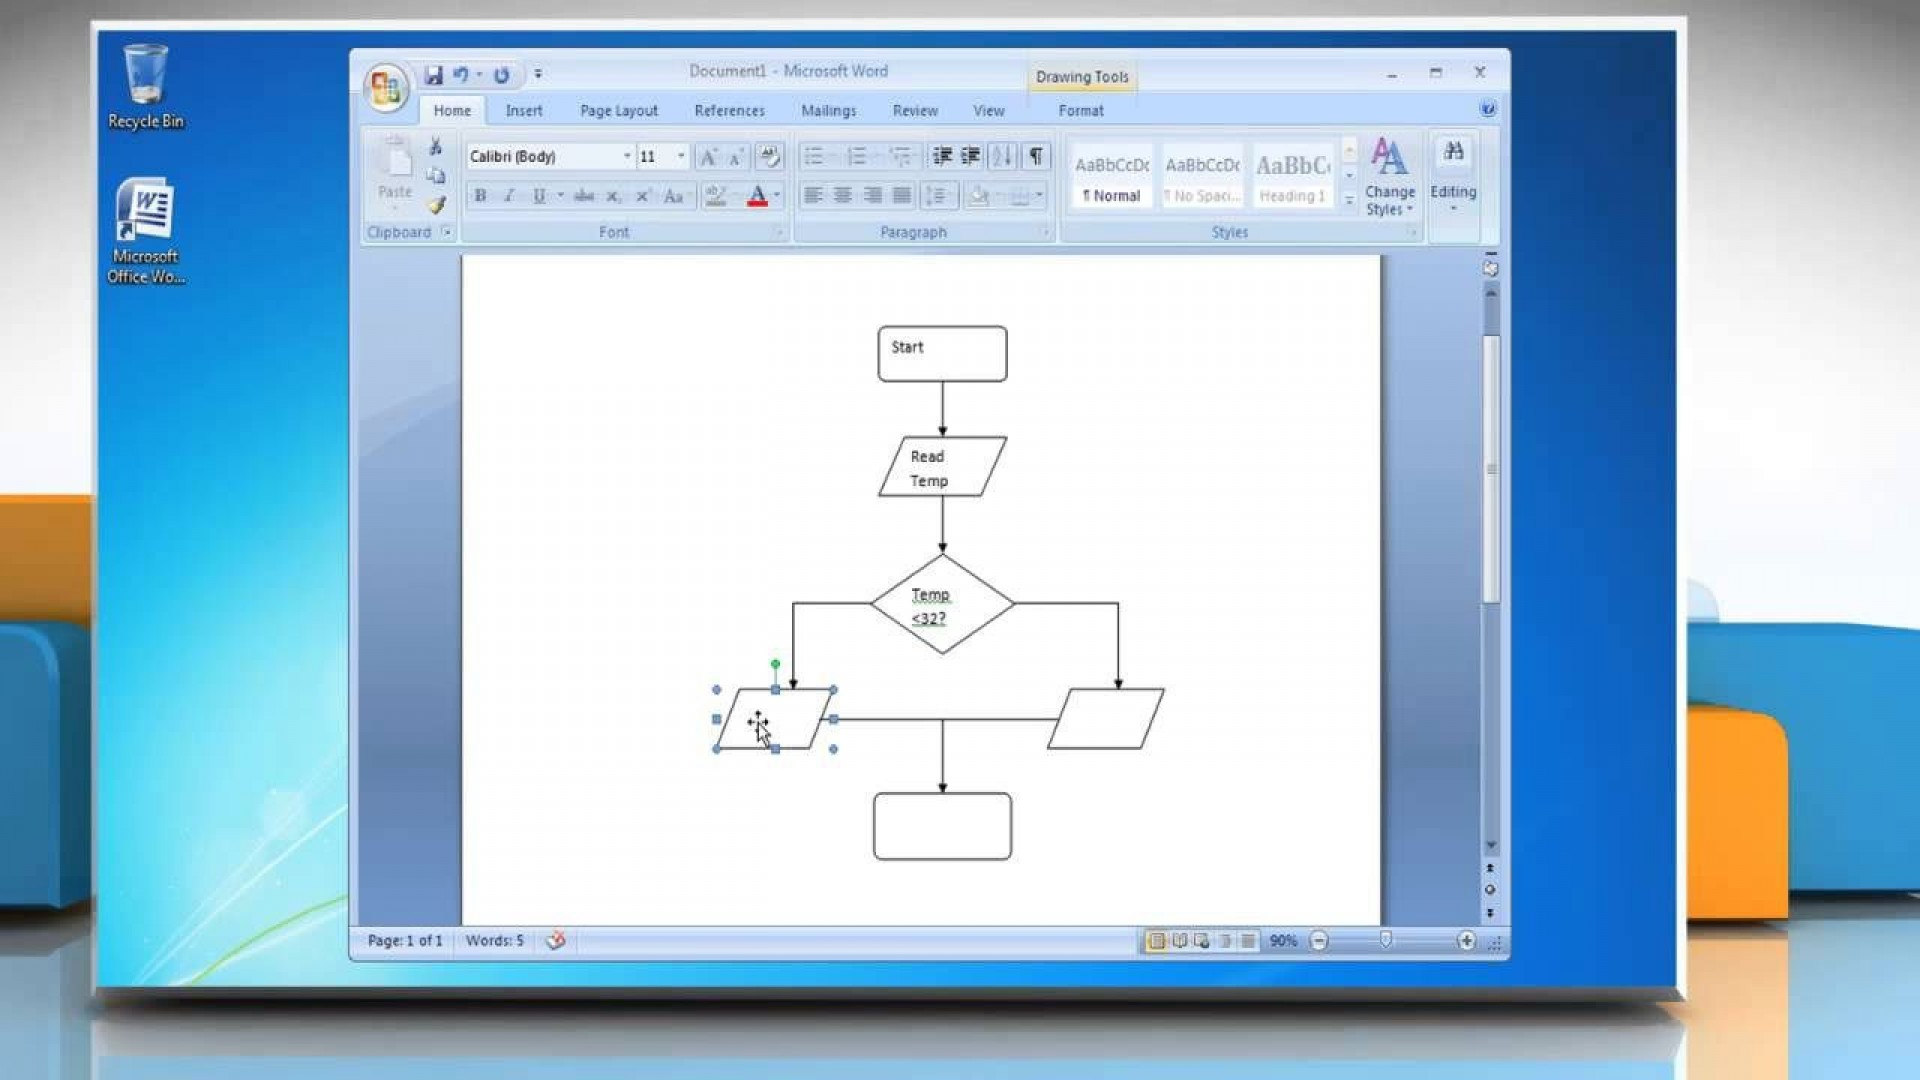 004 Striking How To Draw Use Case Diagram In Microsoft Word 2007 Inspiration 1920